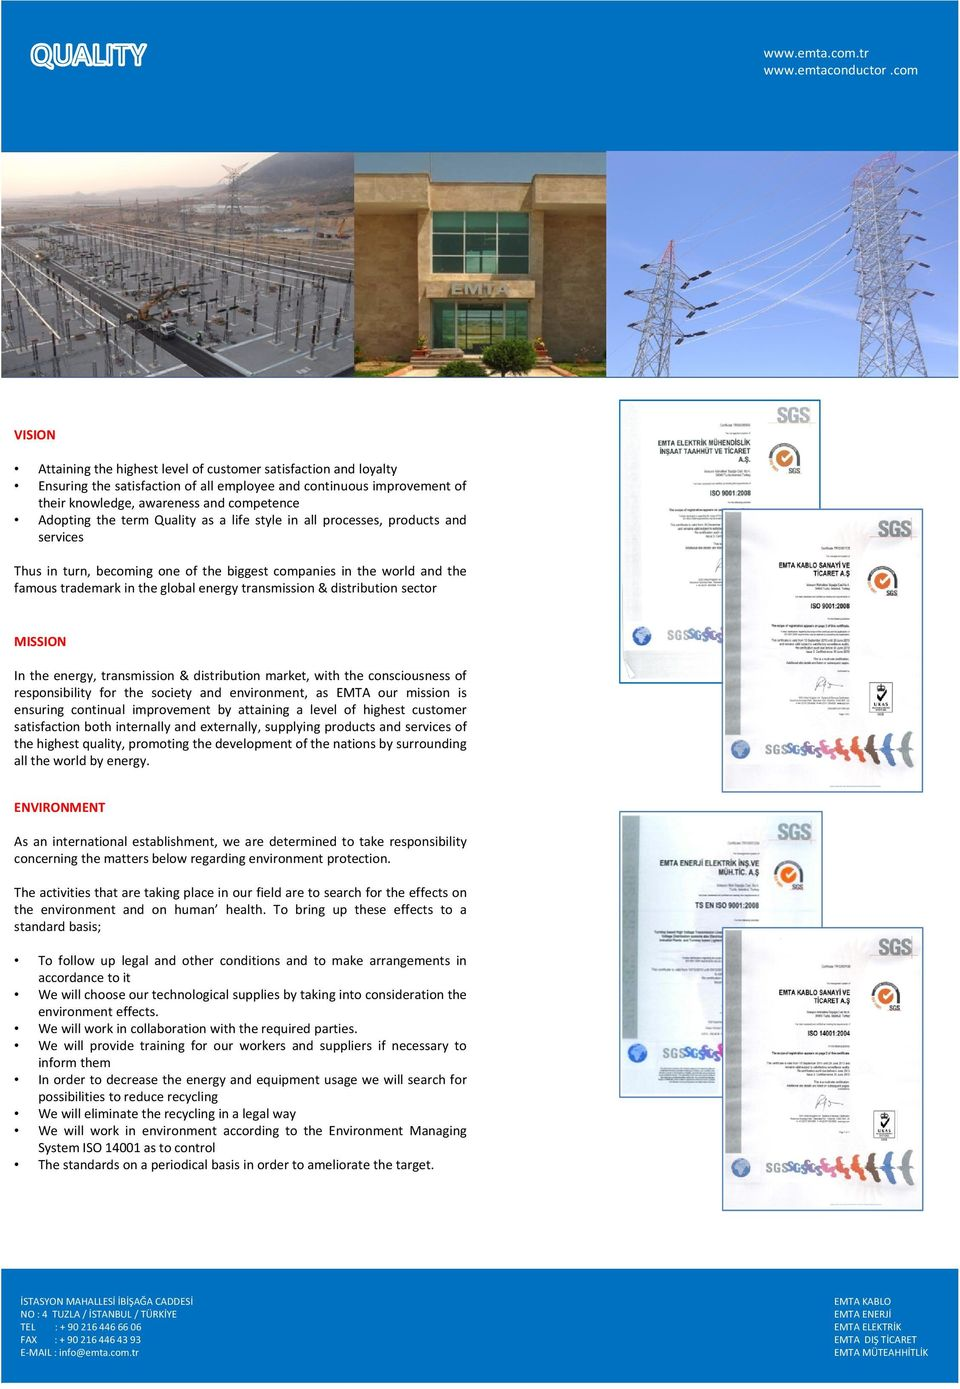 distribution sector MISSION In the energy, transmission & distribution market, with the consciousness of responsibility for the society and environment, as EMTA our mission is ensuring continual